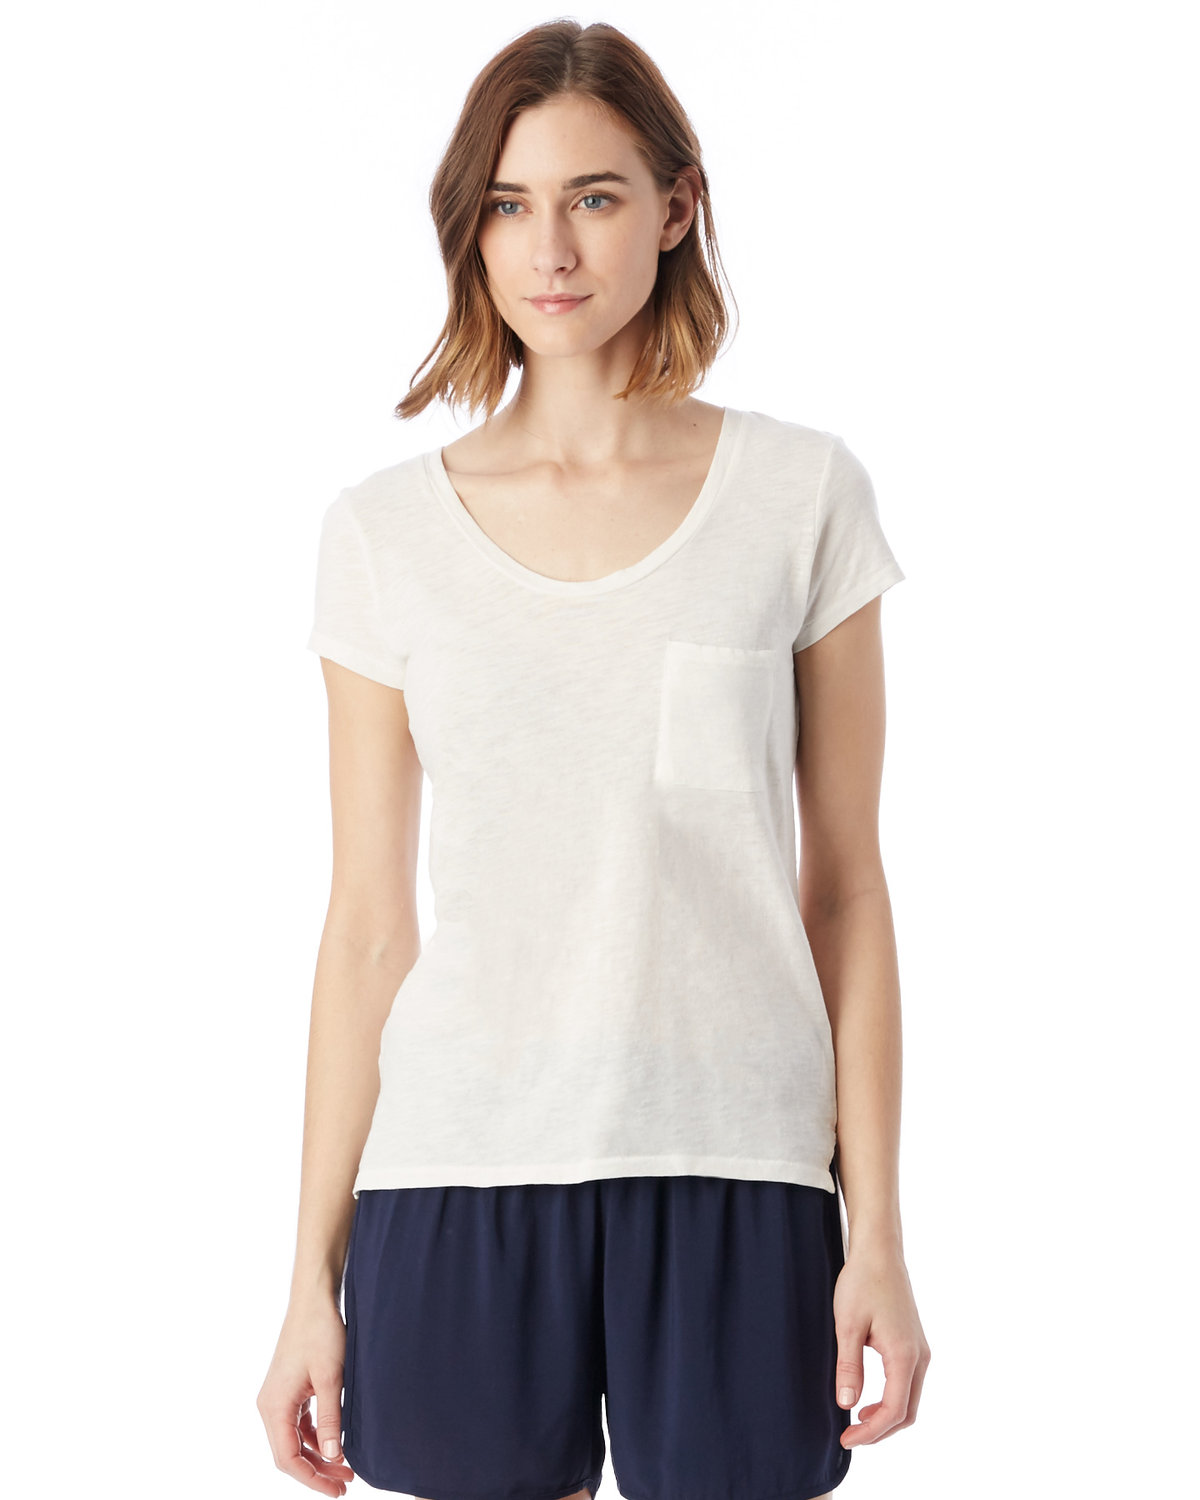 59cbc2959c451 Forever 21 T Shirts Online